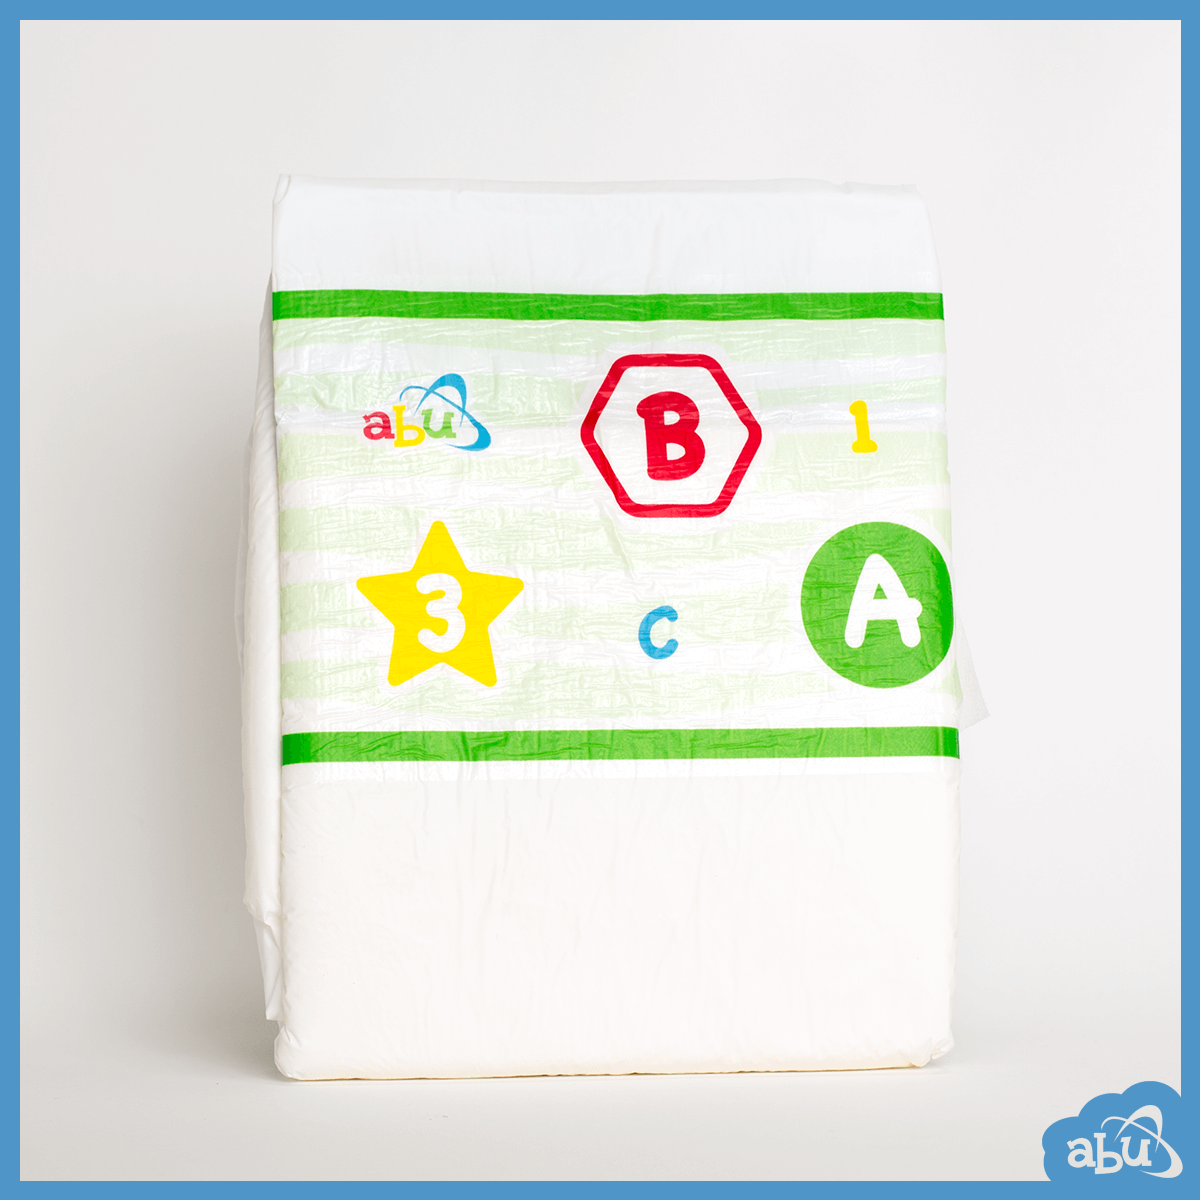 ABUniverse ABU PreSchool Plastic Backed Diapers Nappies ABDL - Pack of 10 2